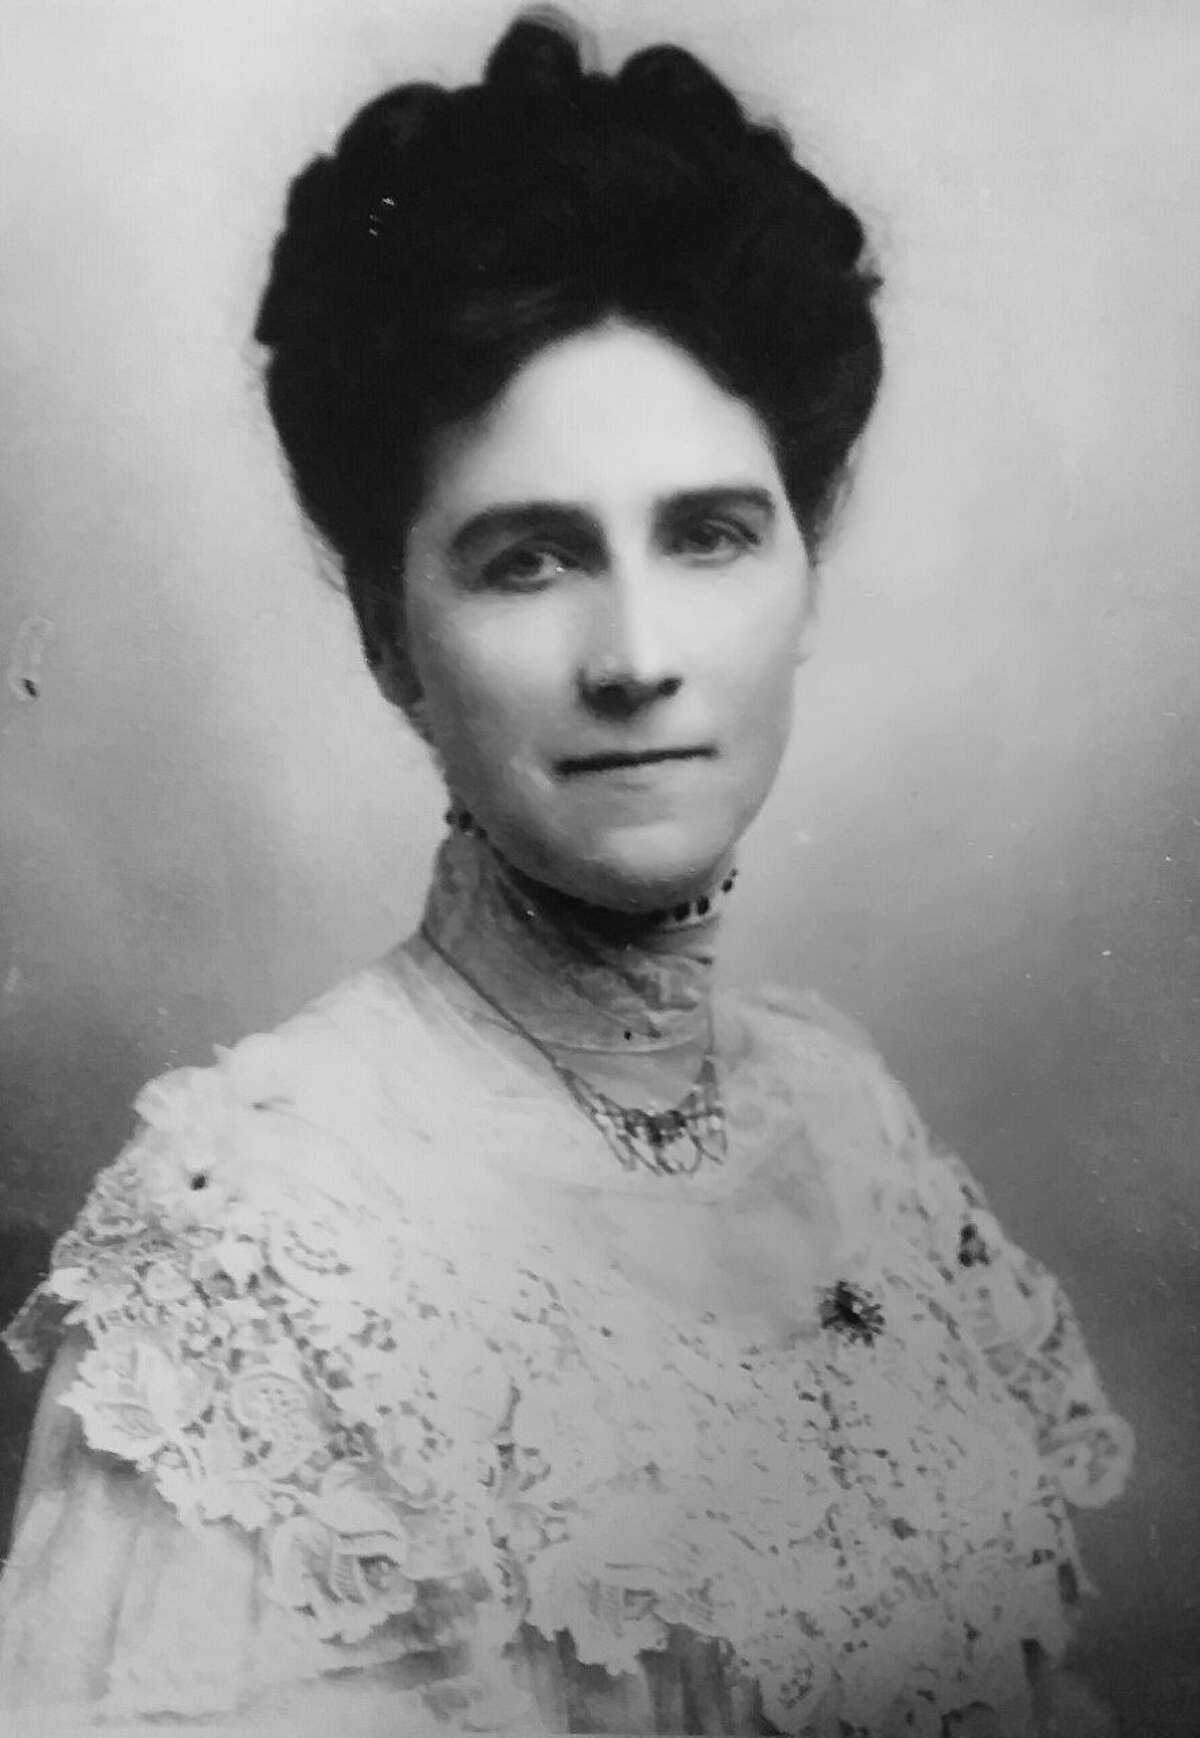 Mother, wife, and society gal, Martha Hayes was one of the founding members of the Lakeside Club. The above photo was taken circa 1900 and iis included in the museum's Portrait and Poses collection, Album 4, Photo 22.